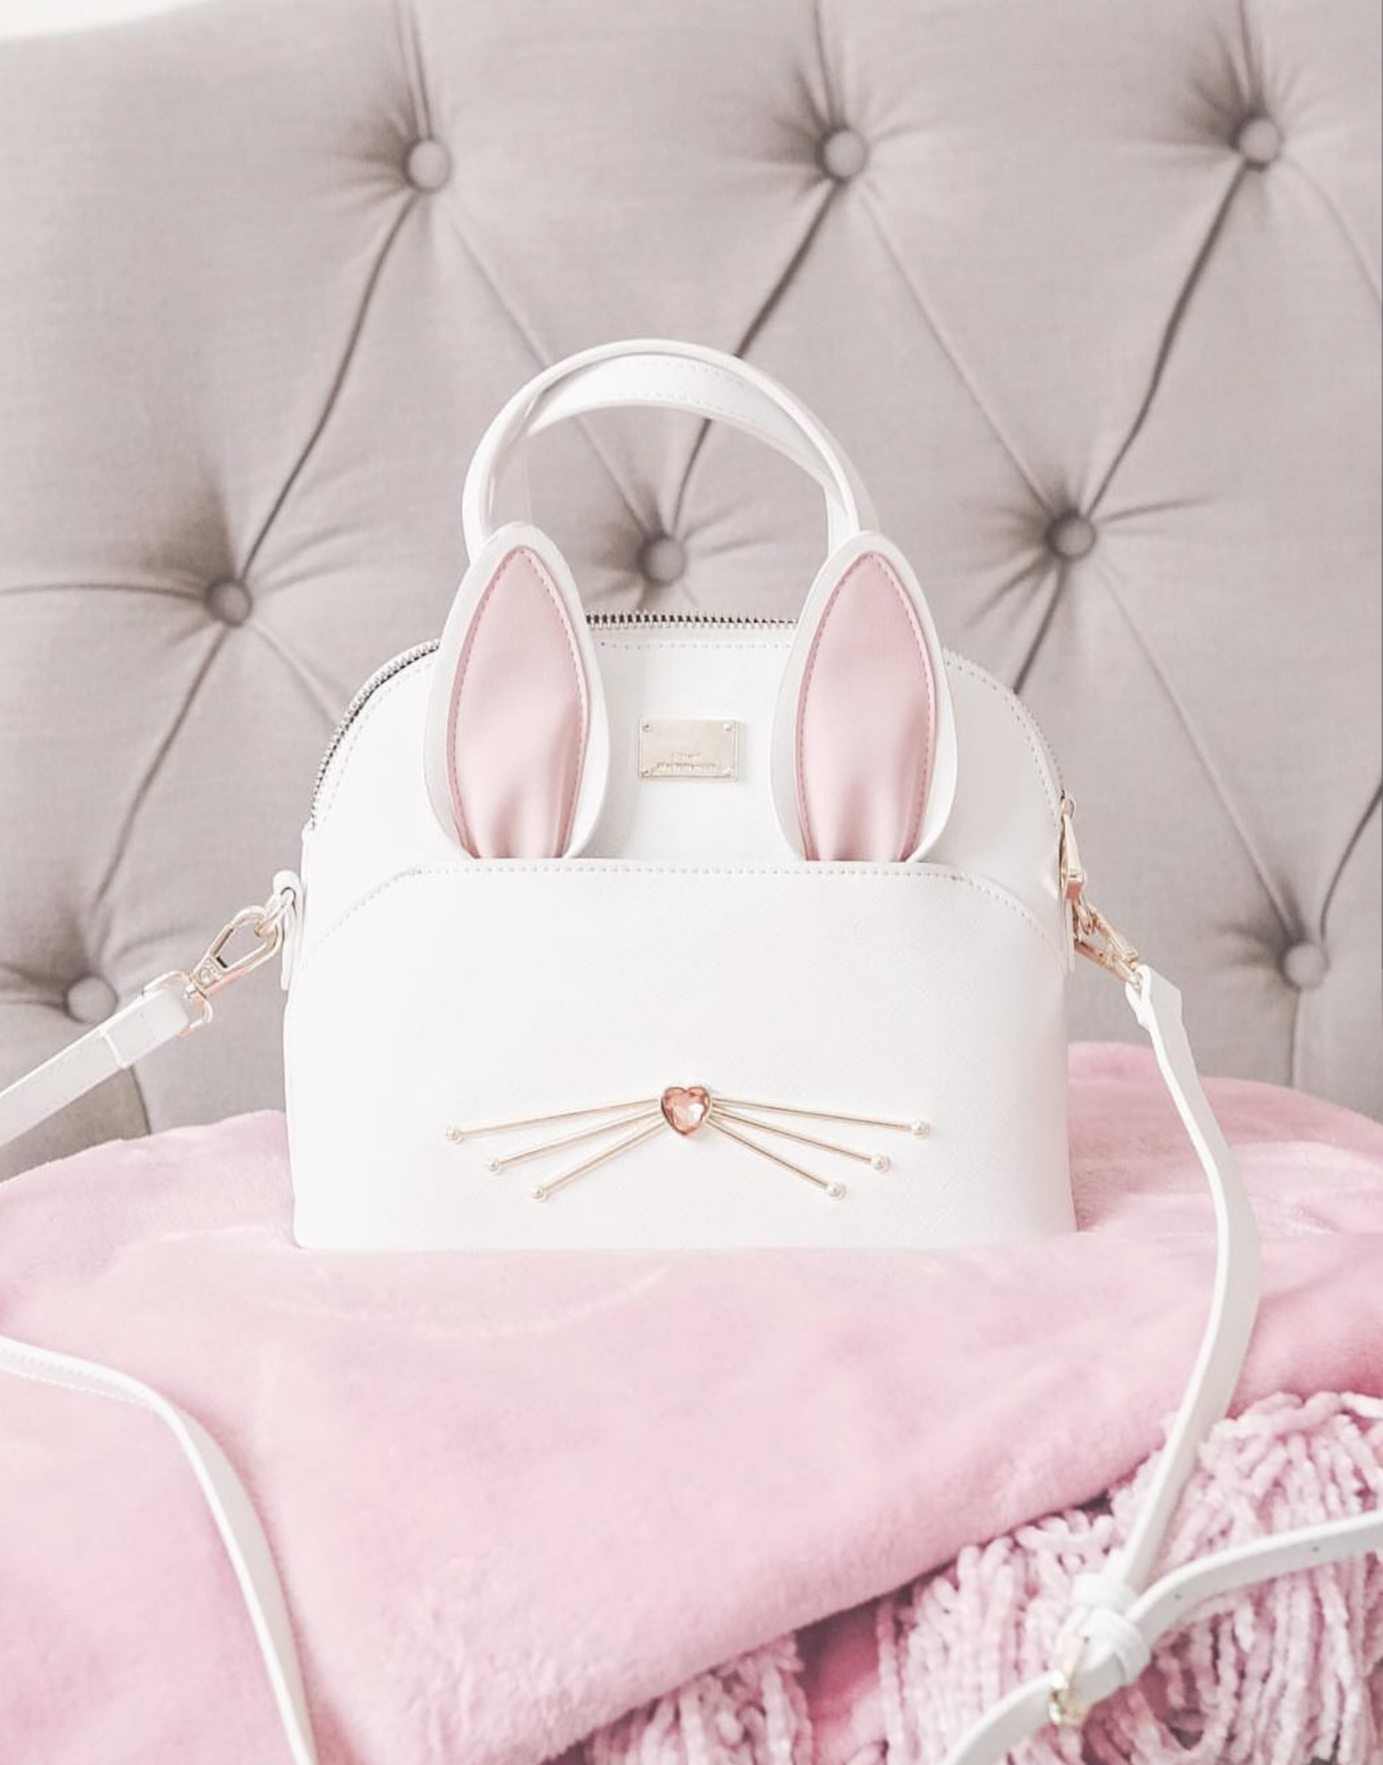 Handbags For Spring That Are Oh So Feminine & Cute